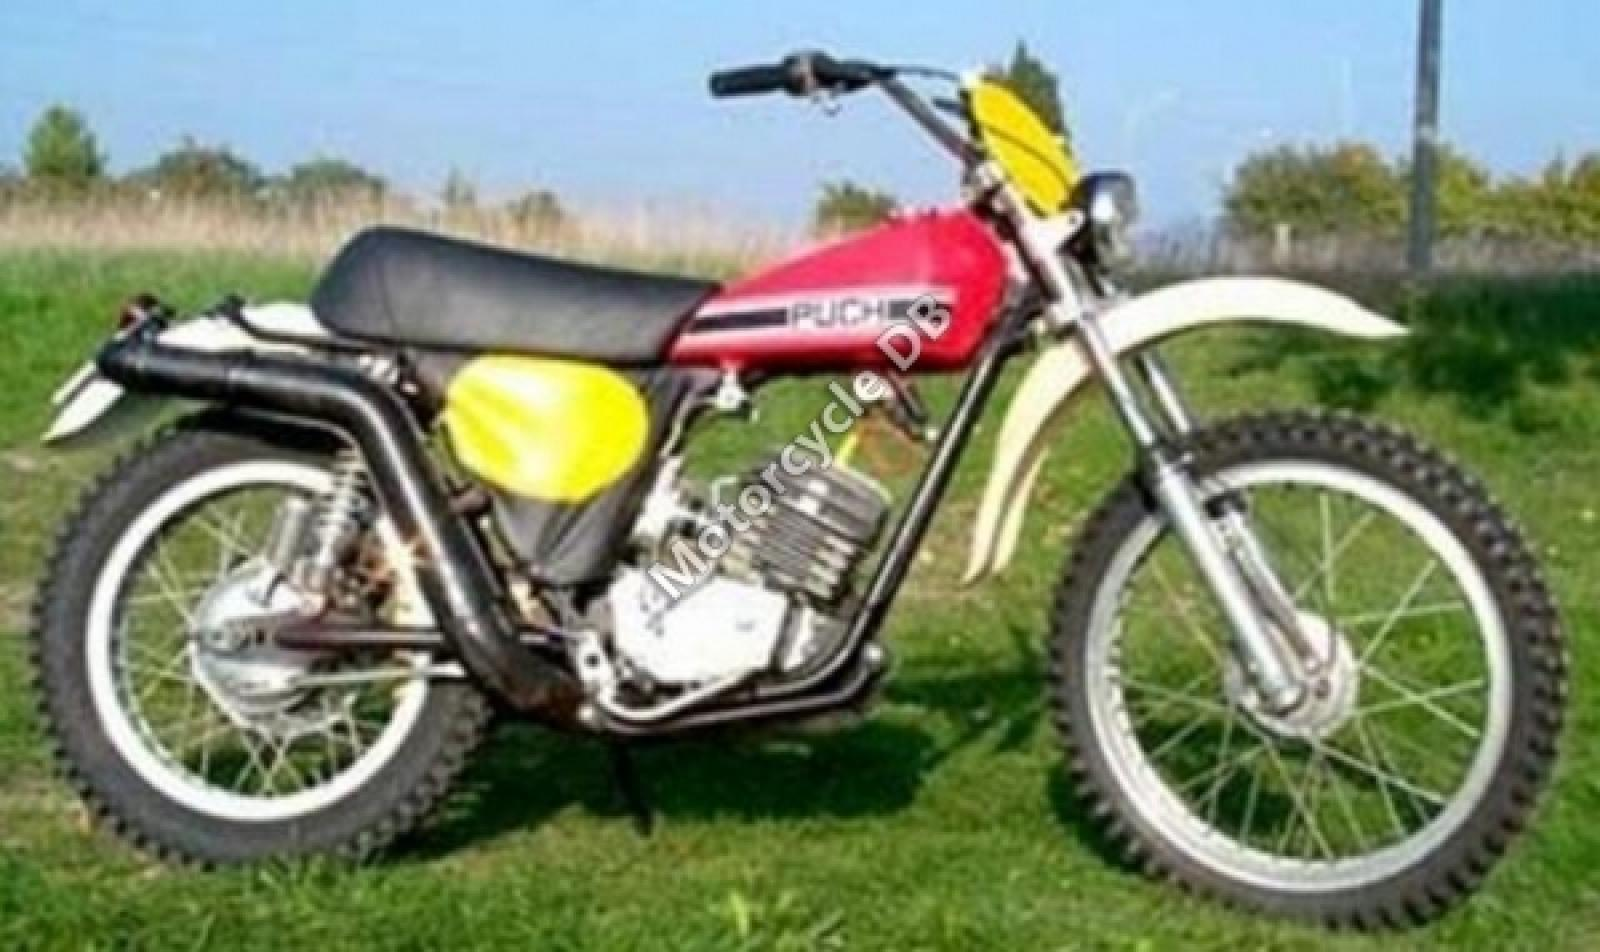 Puch GS 350 F 5 1987 images #121675